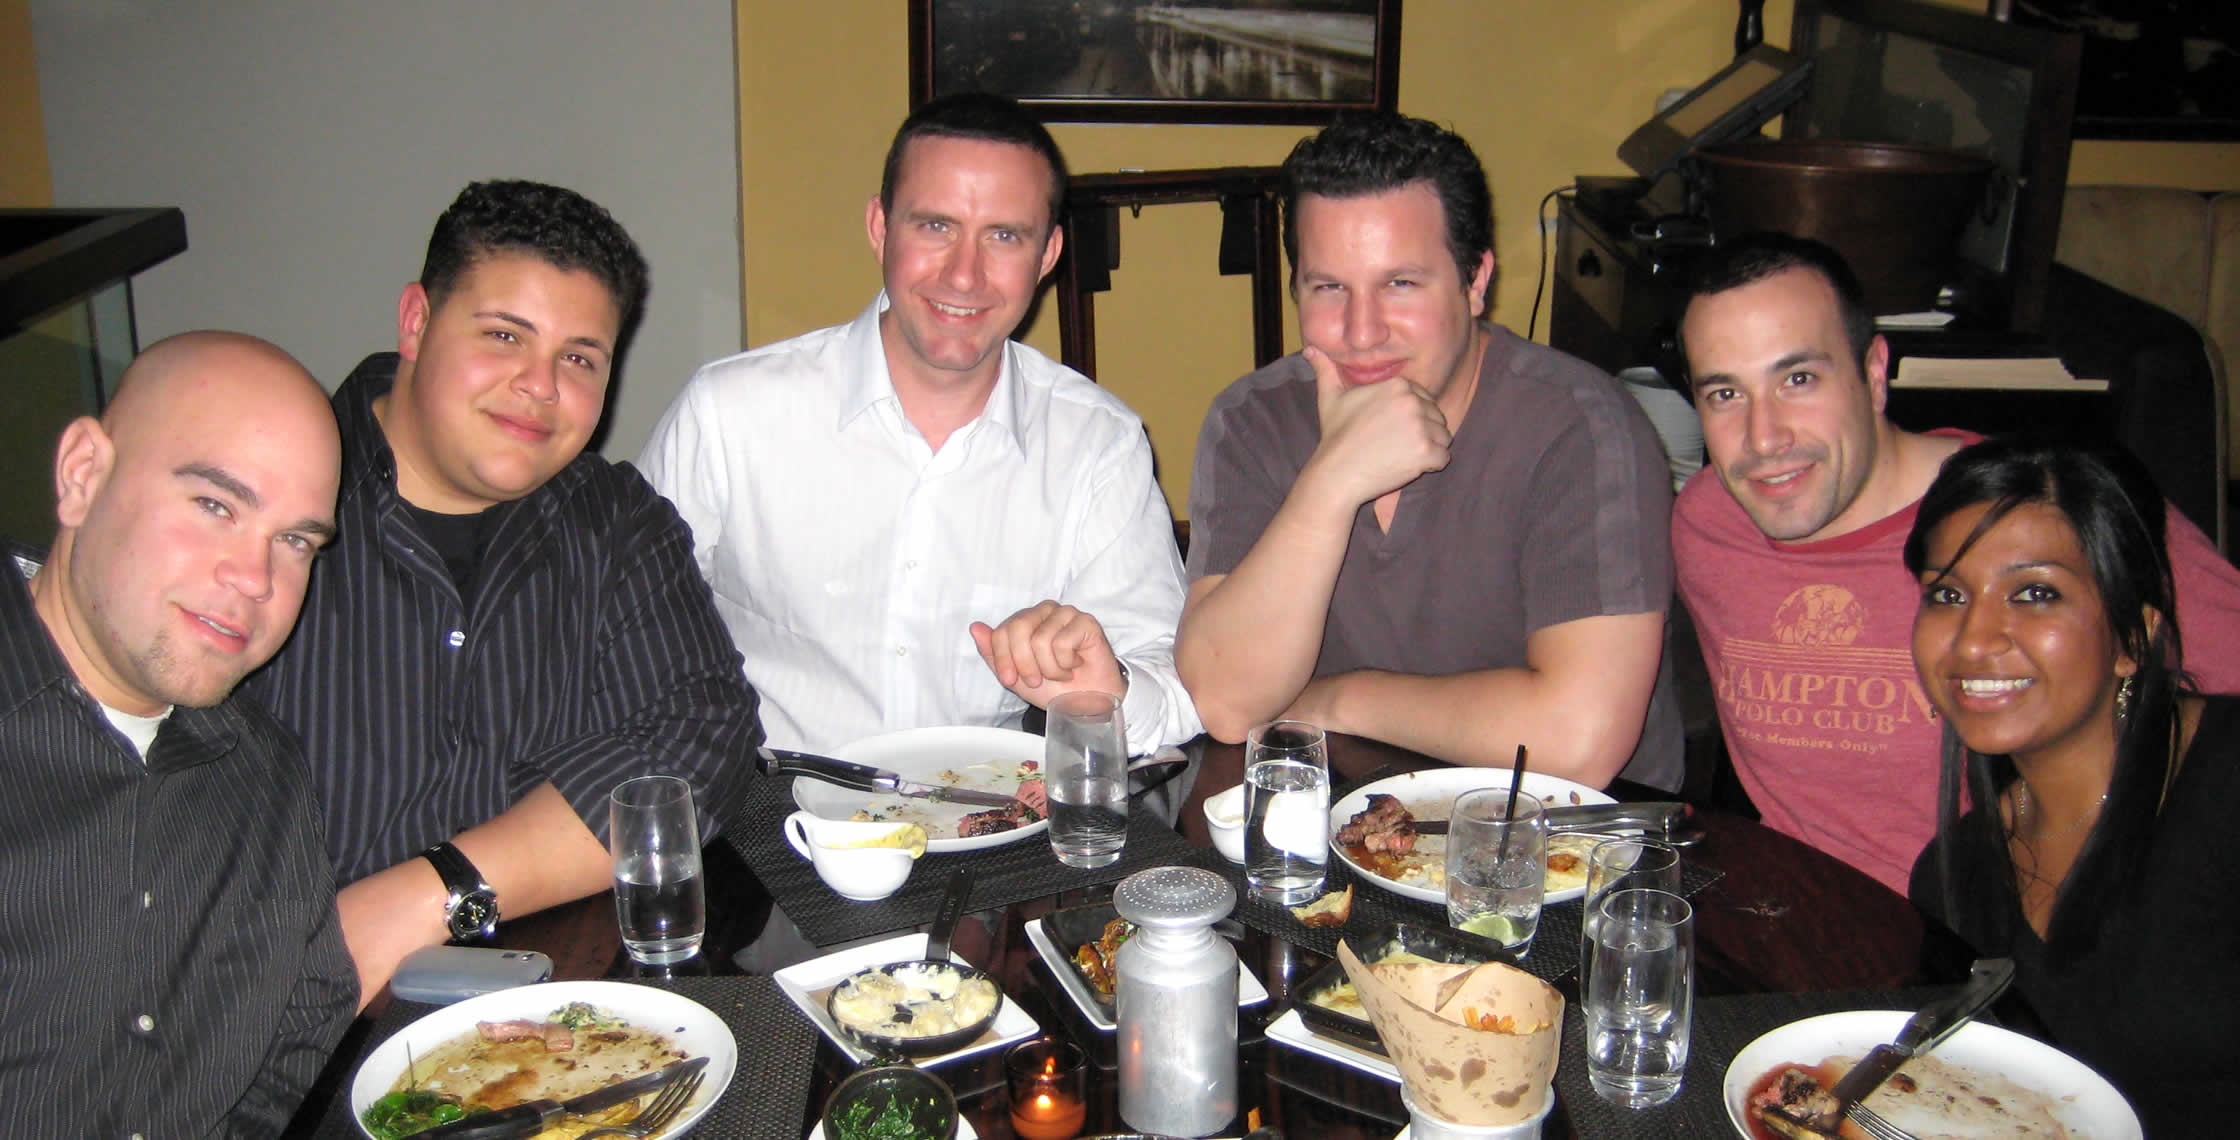 Ben Nadel at the New York ColdFusion User Group (Apr. 2008) with: Clark Valberg and Peter Bell and Rob Gonda and Nafisa Sabu